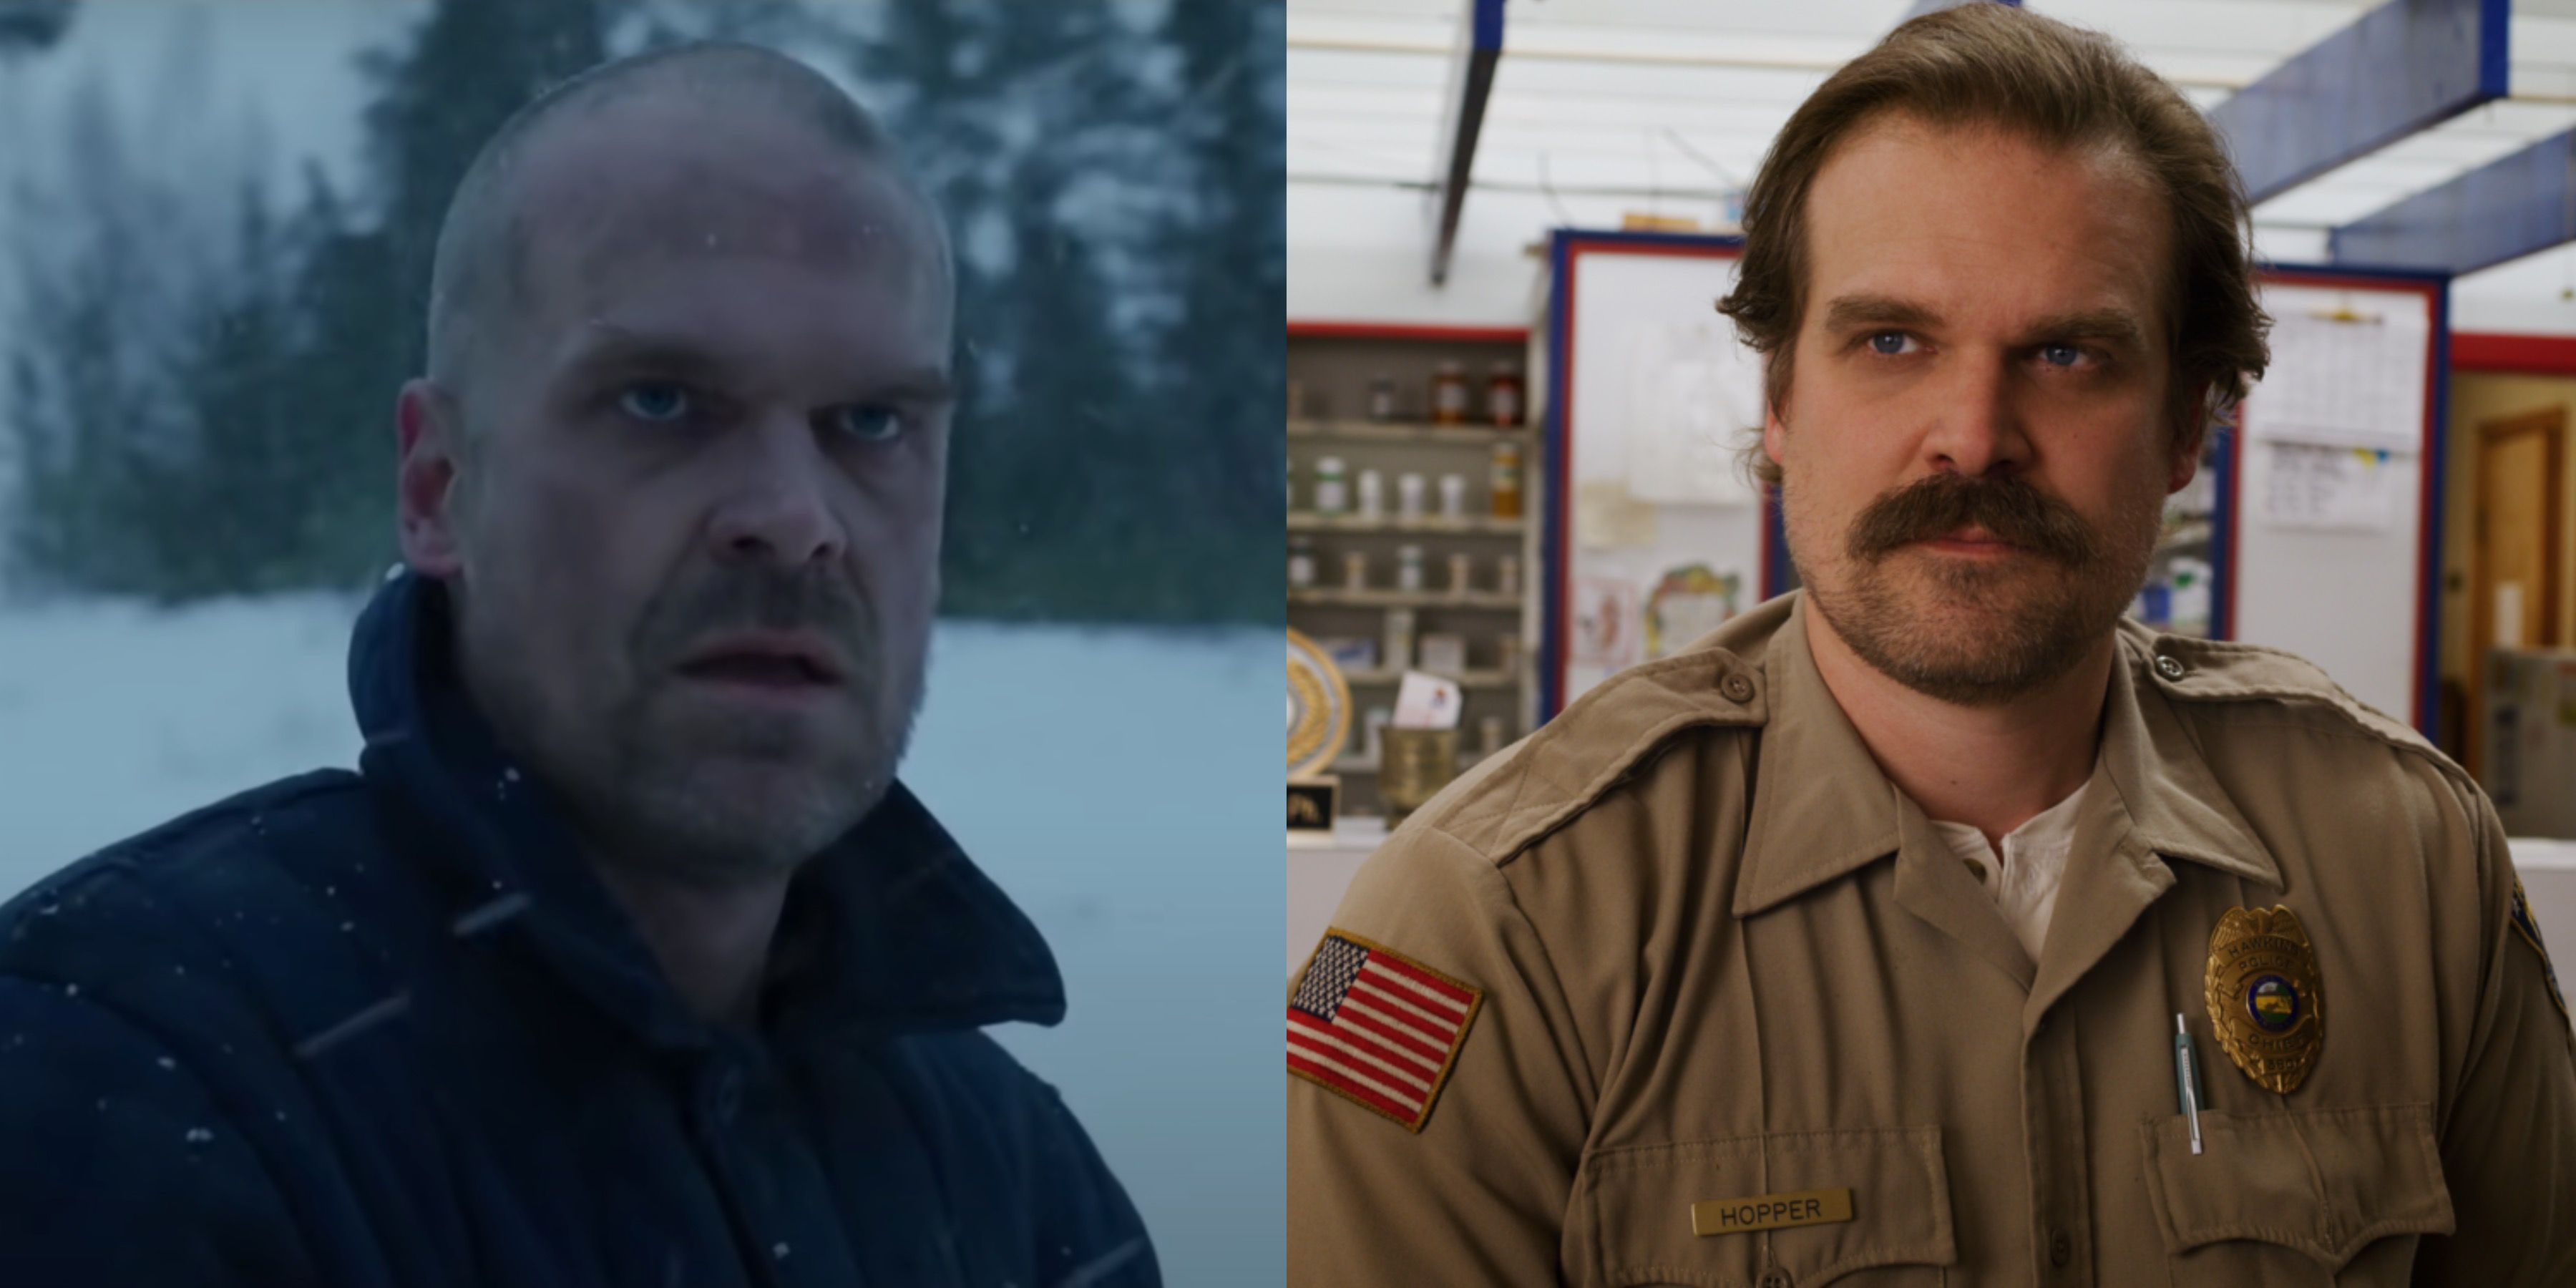 Stranger Things Season 4 Hopper Villain Theory - David Harbour's Character Is Alive, But He Might Be a Villain